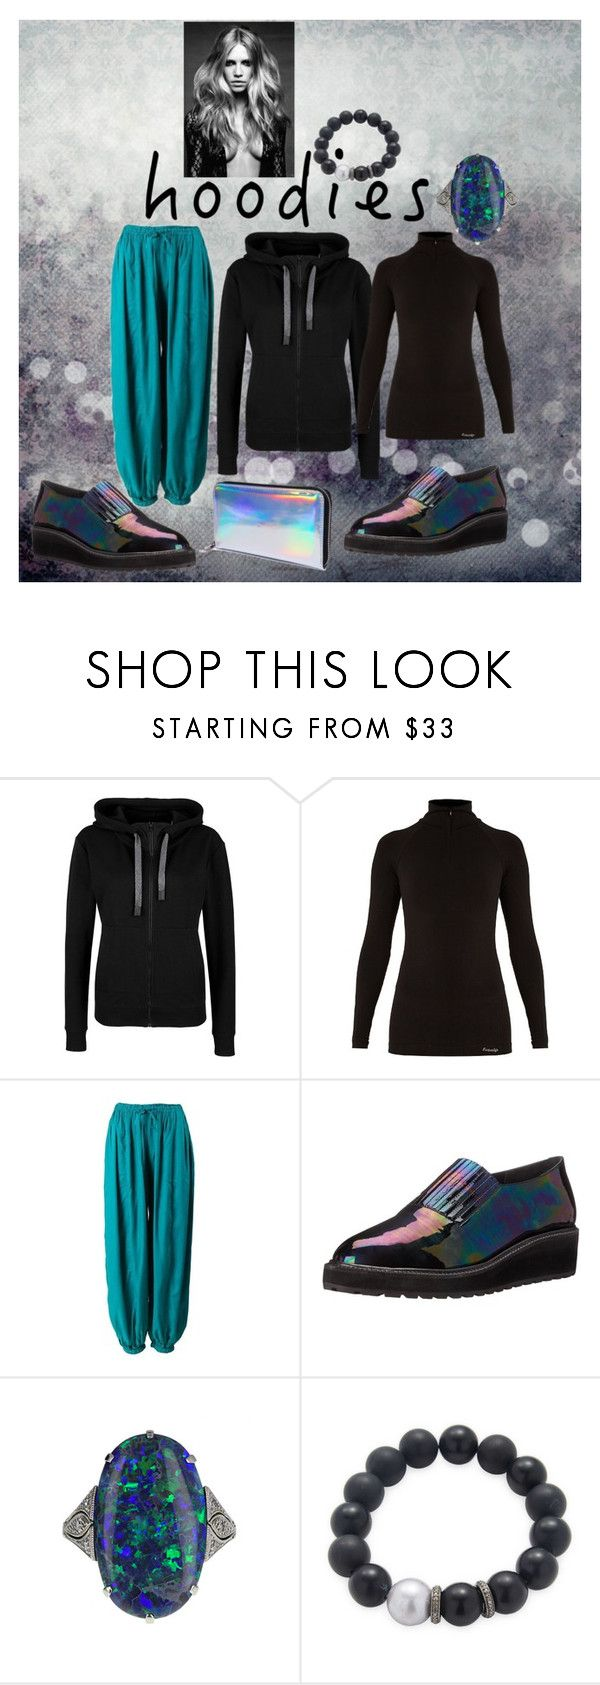 """hoody"" by moestesoh ❤ liked on Polyvore featuring Fusalp, Loeffler Randall, Bavna, Current Mood and Hoodies"